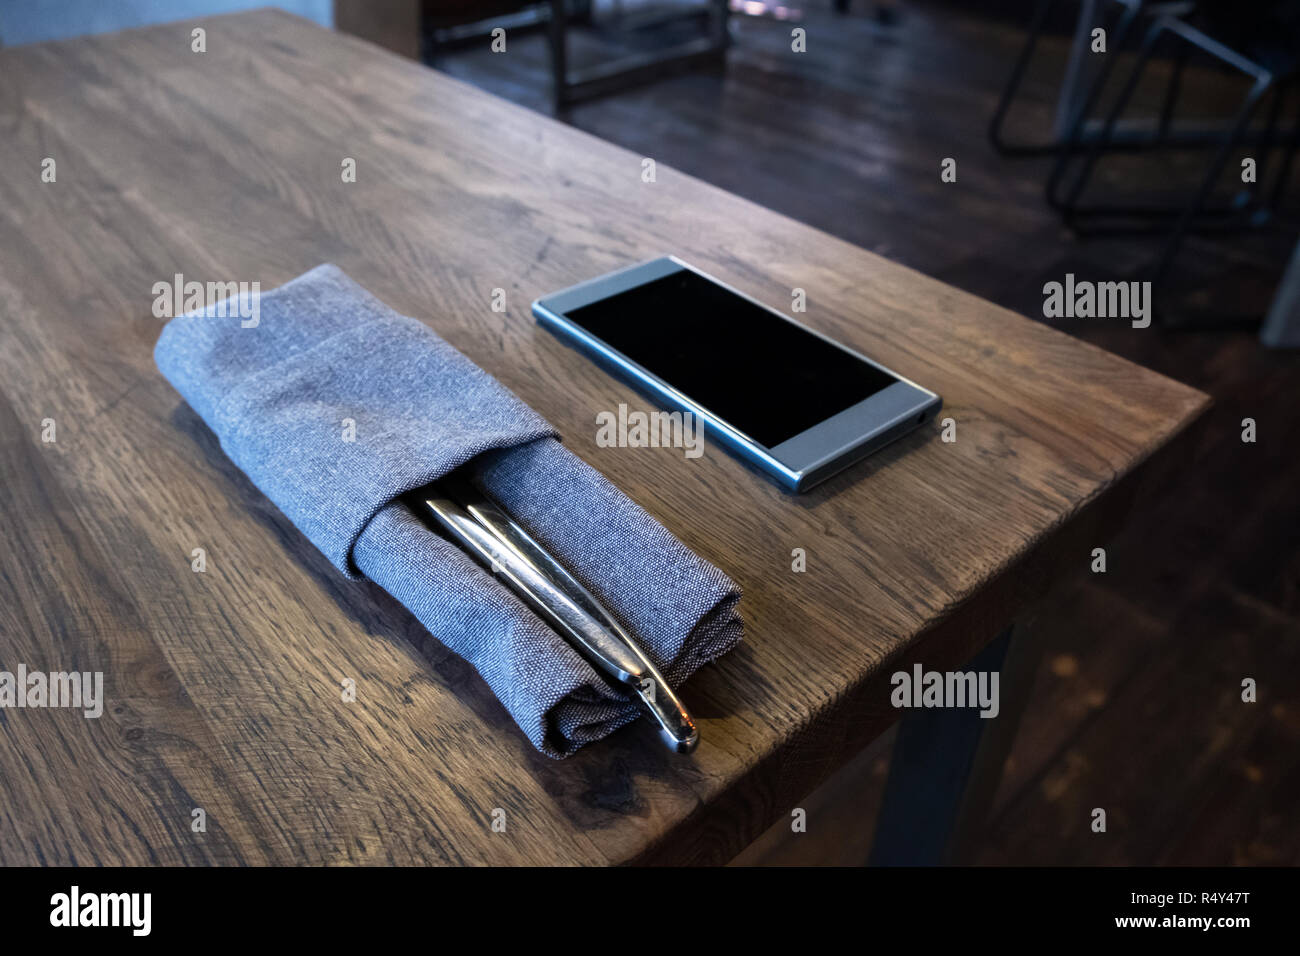 Mobile phone with cutlery set on wooden table in restaurant. Smartphone addiction concept. Ordering food online - Stock Image